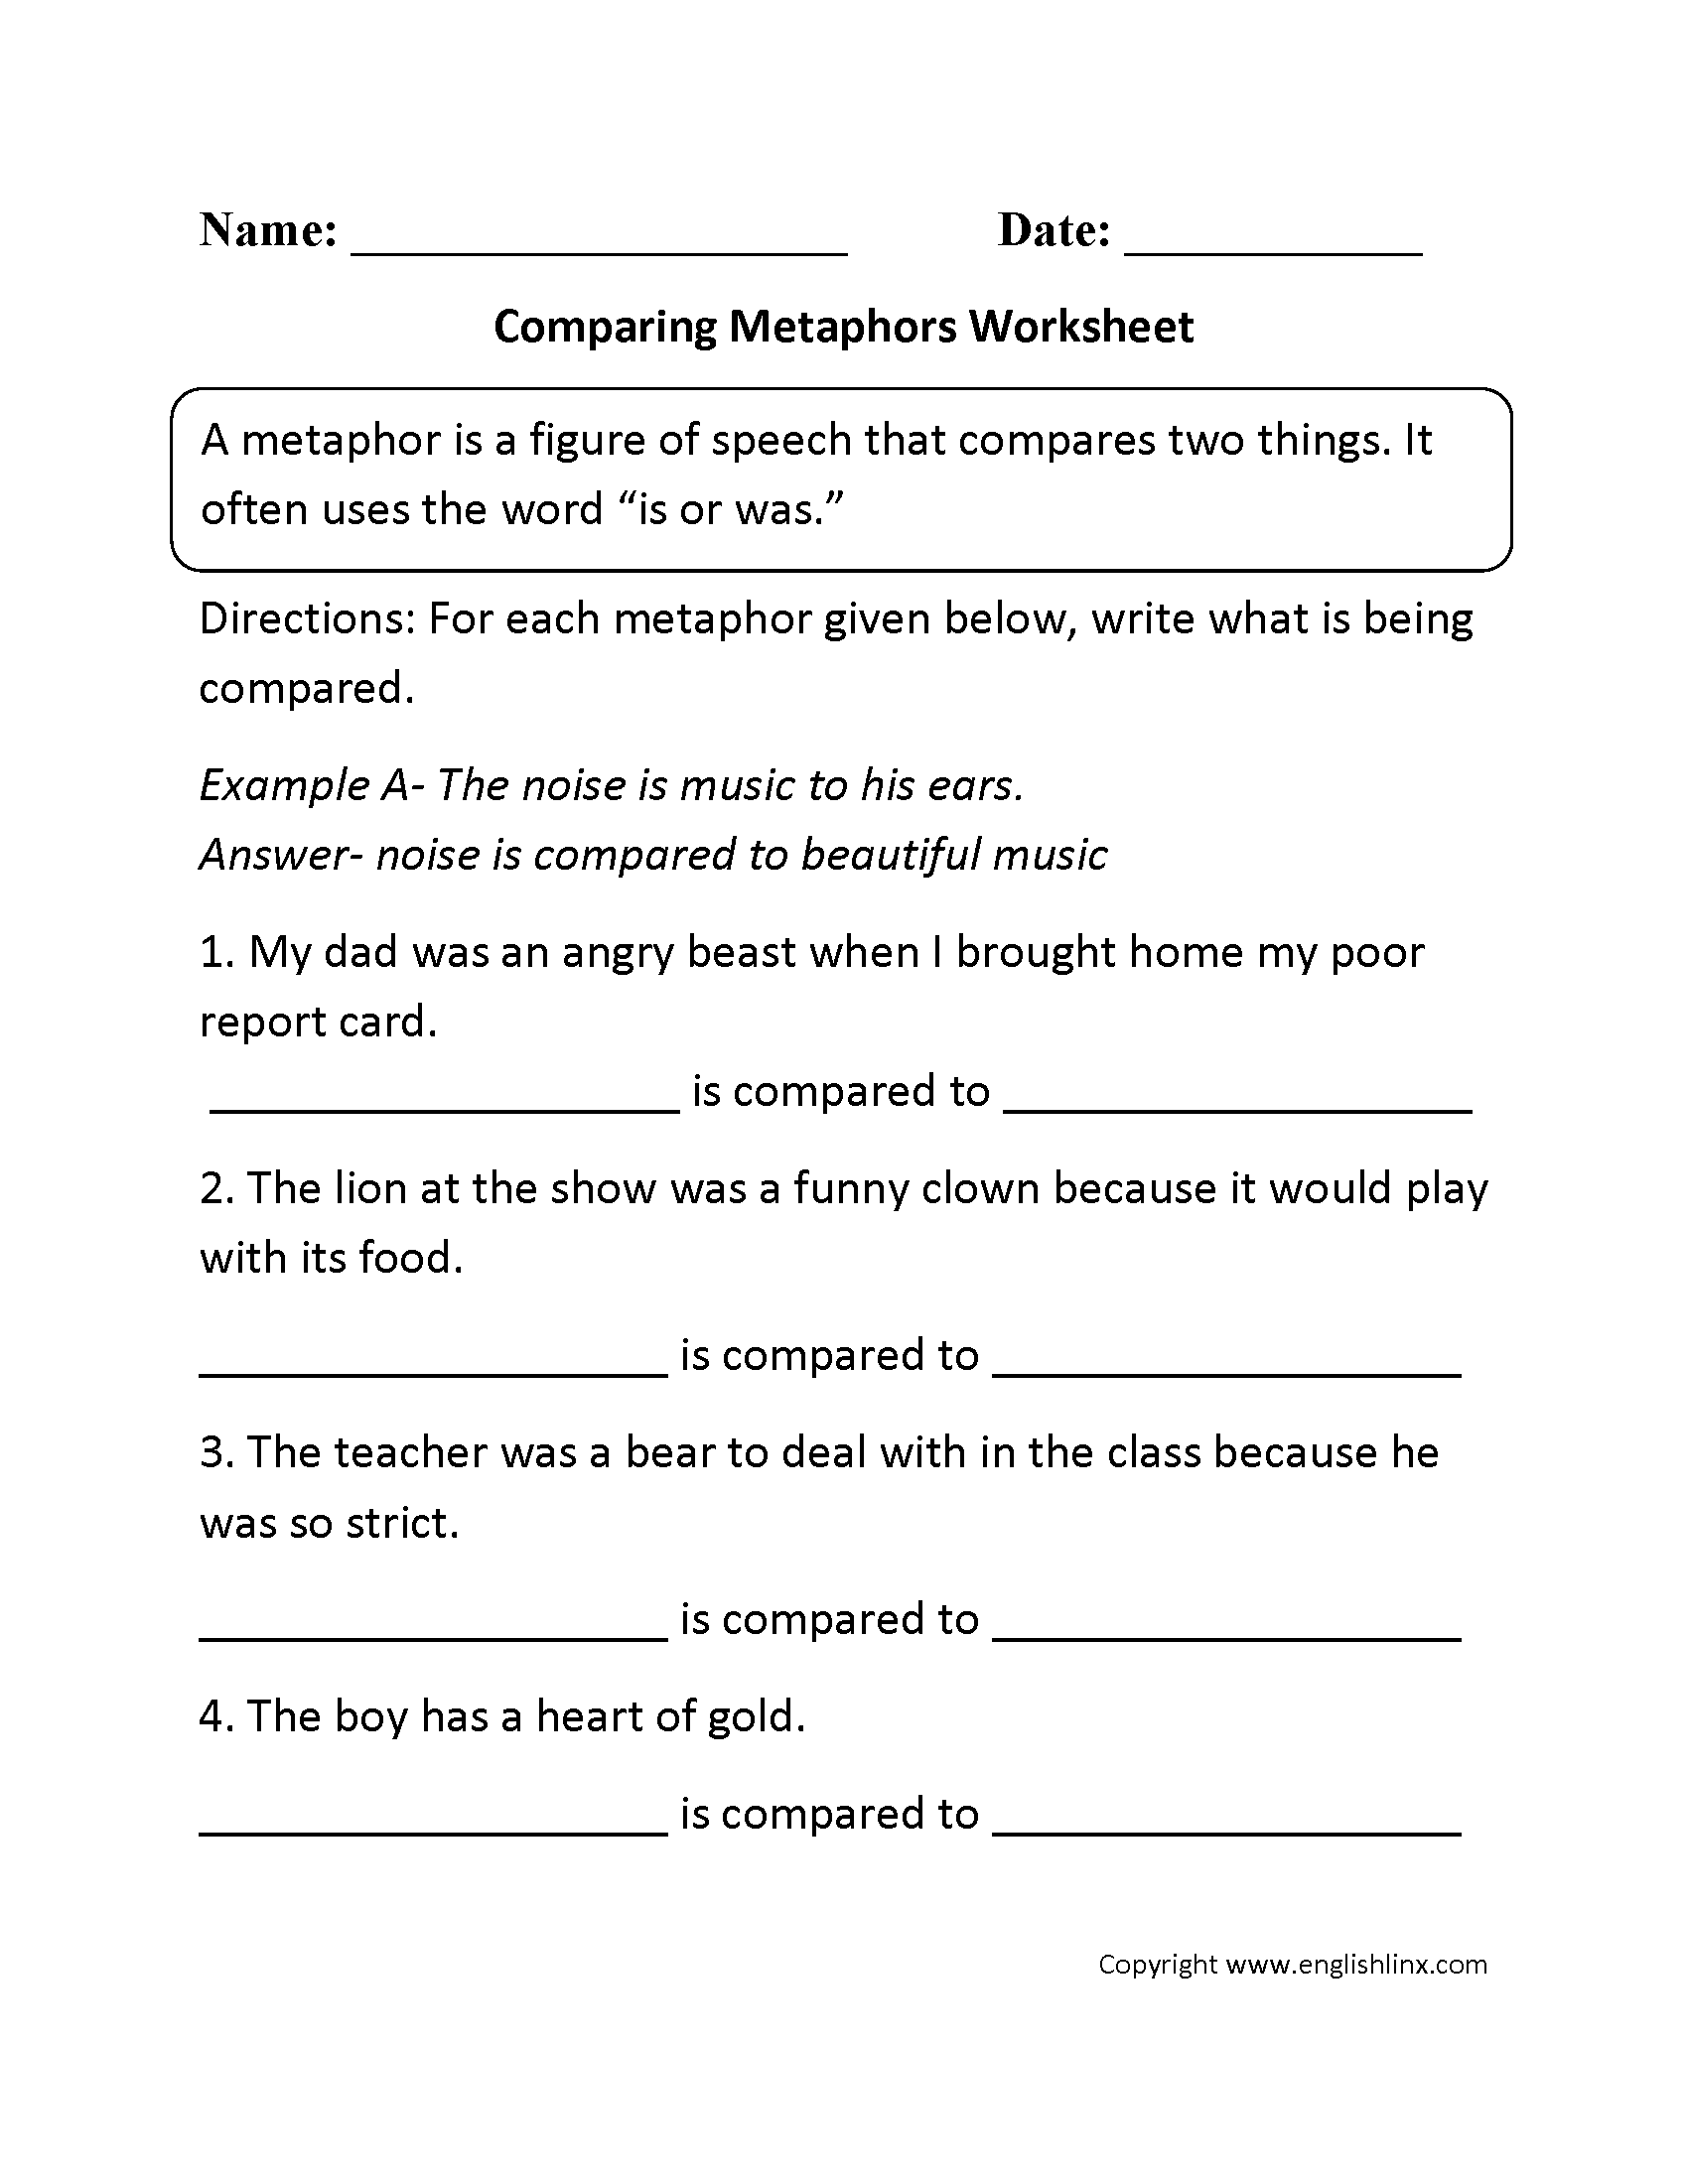 Free Metaphor Worksheets Englishlinx